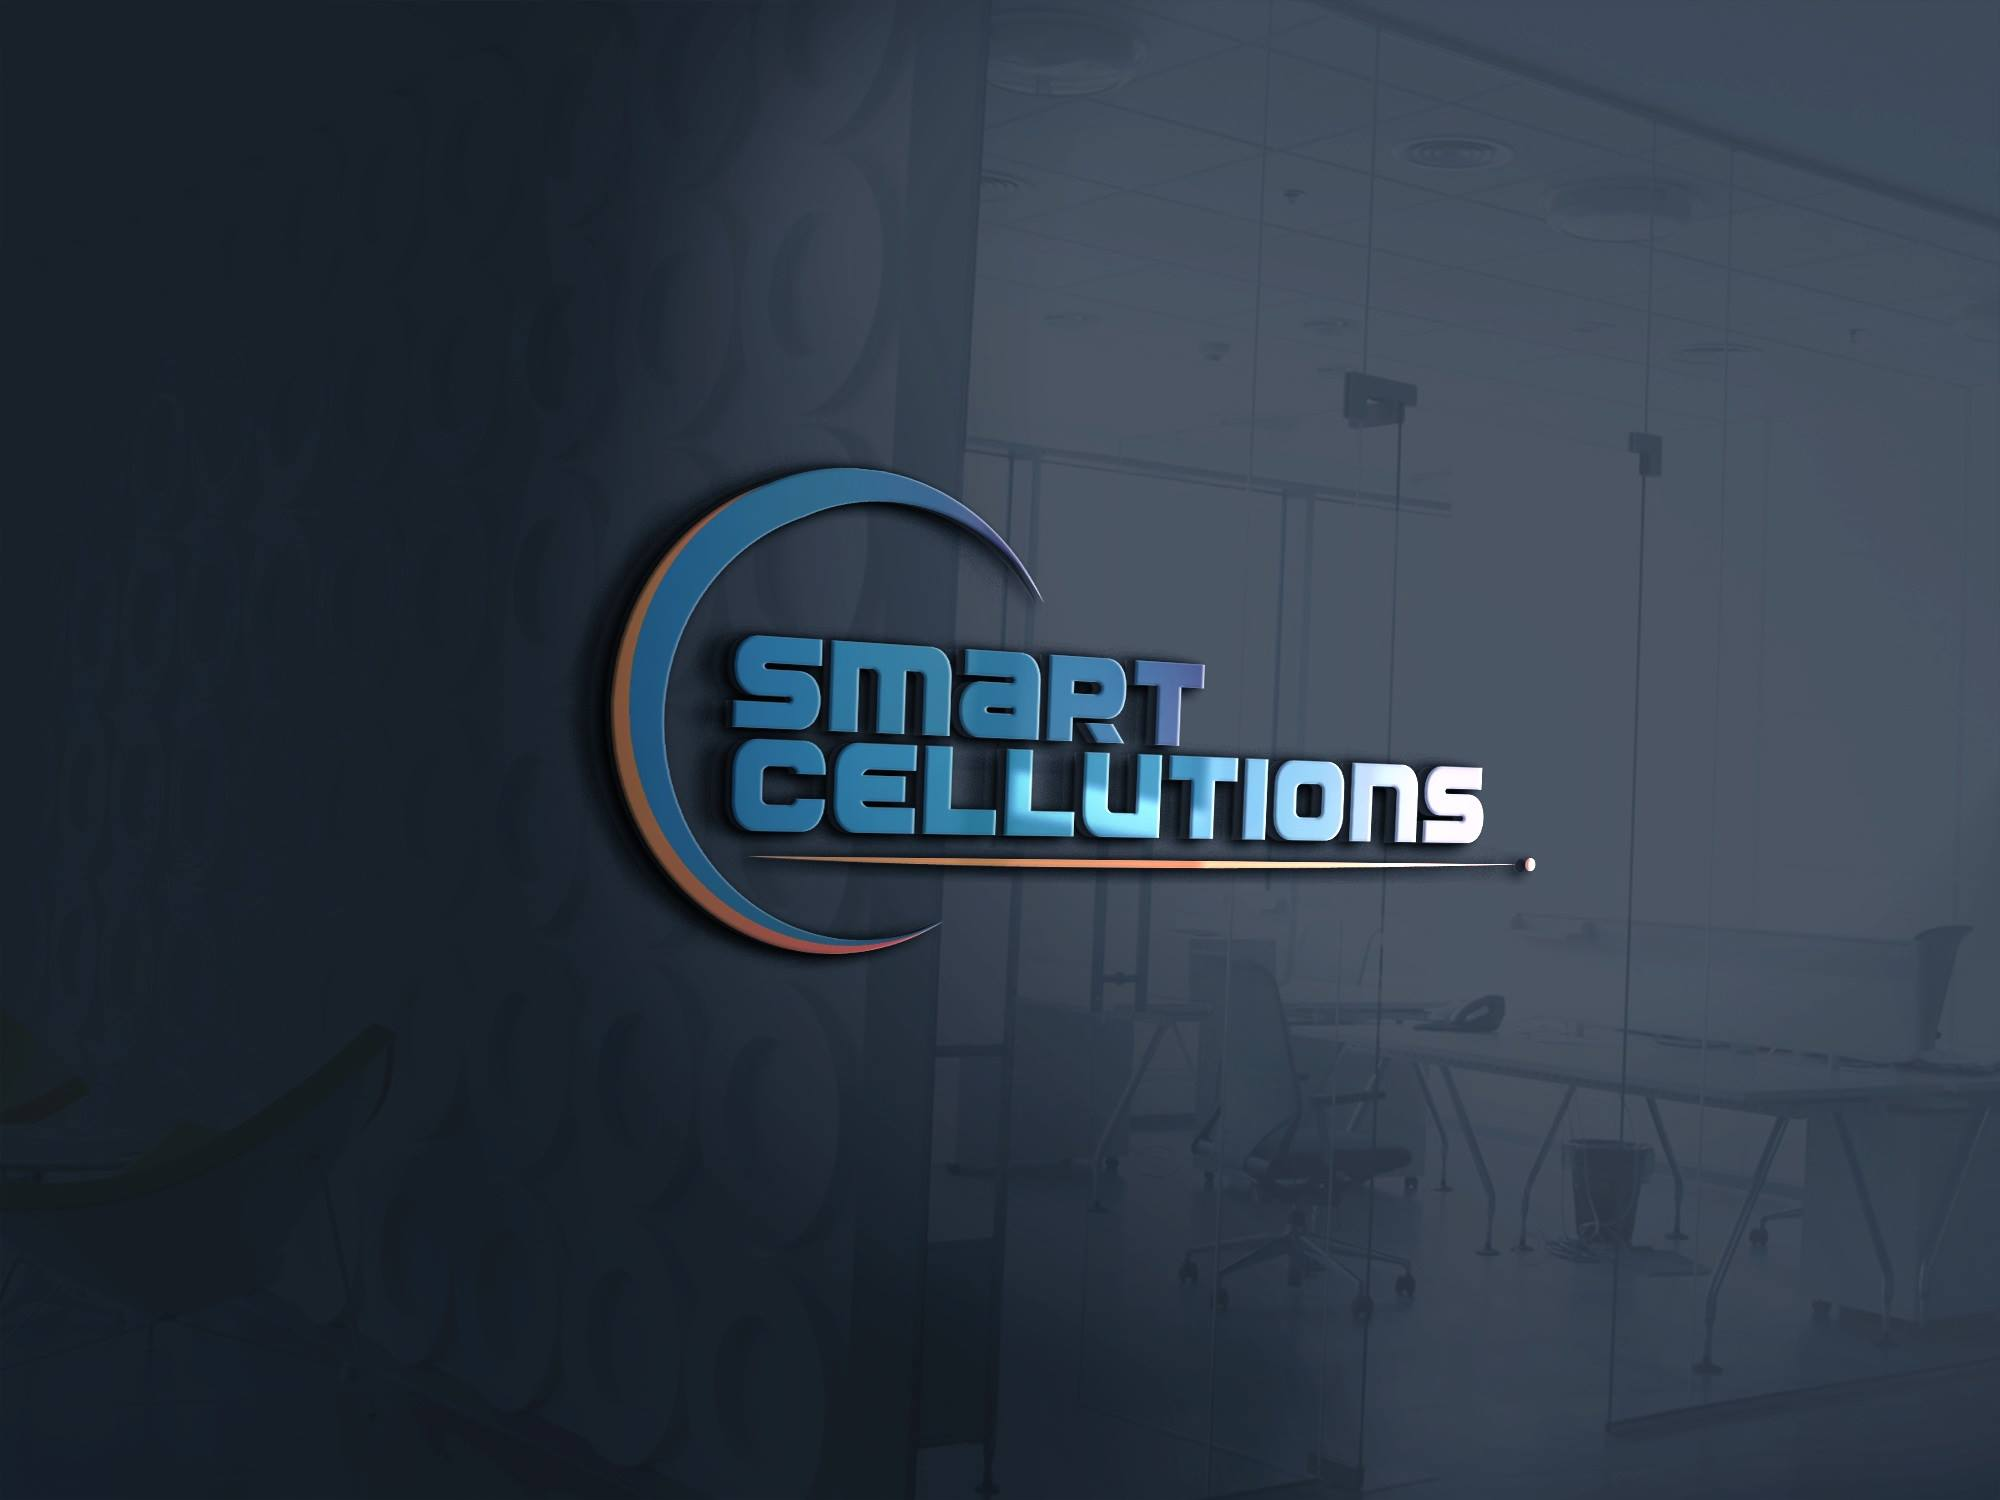 Smart Cellutions